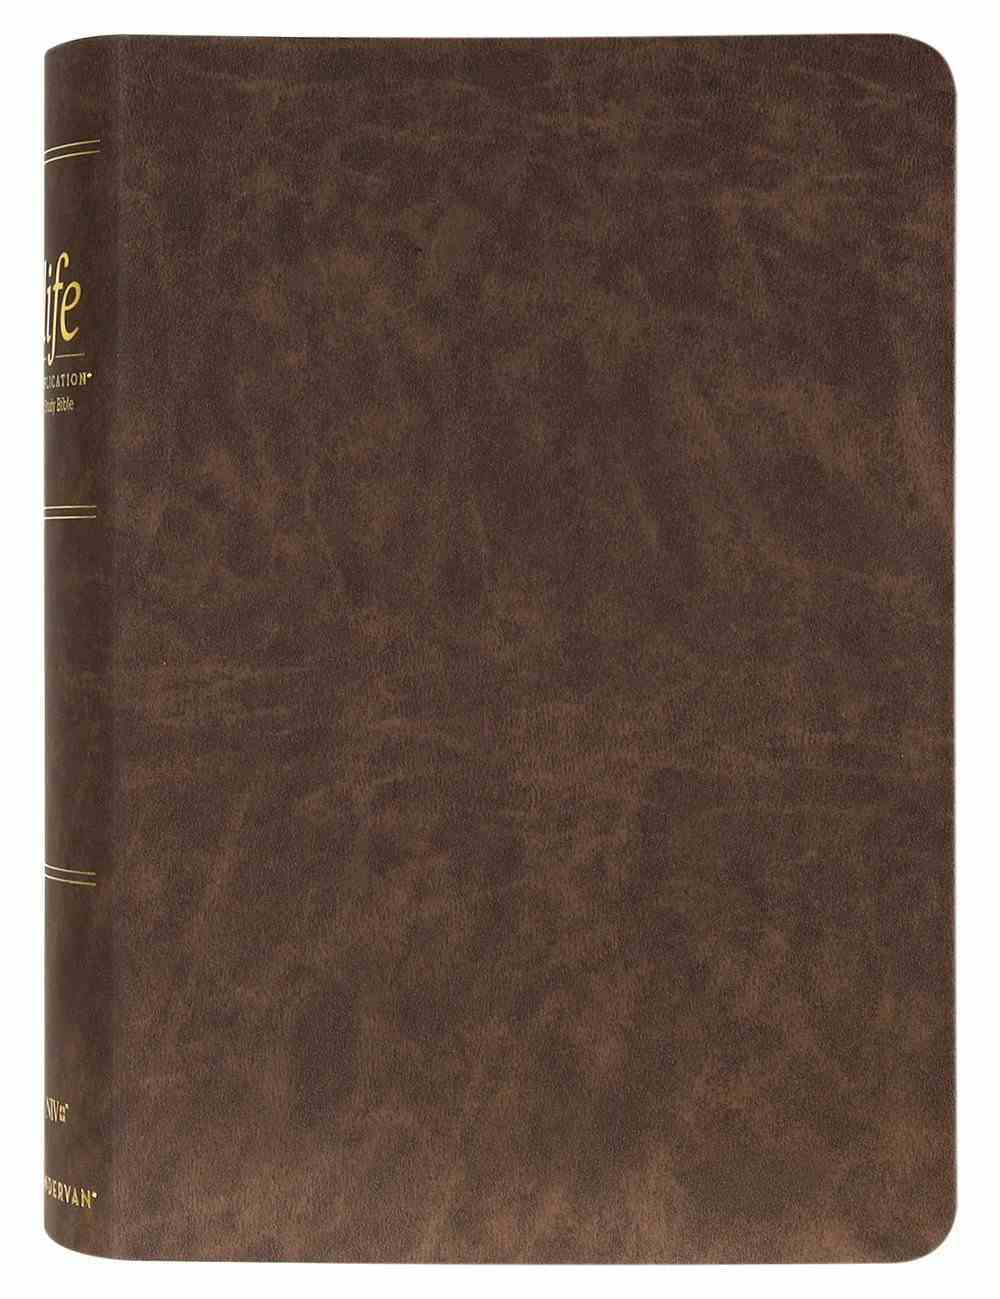 NIV Life Application Study Bible Brown Thumb Indexed (Red Letter Edition) (3rd Edition) Bonded Leather